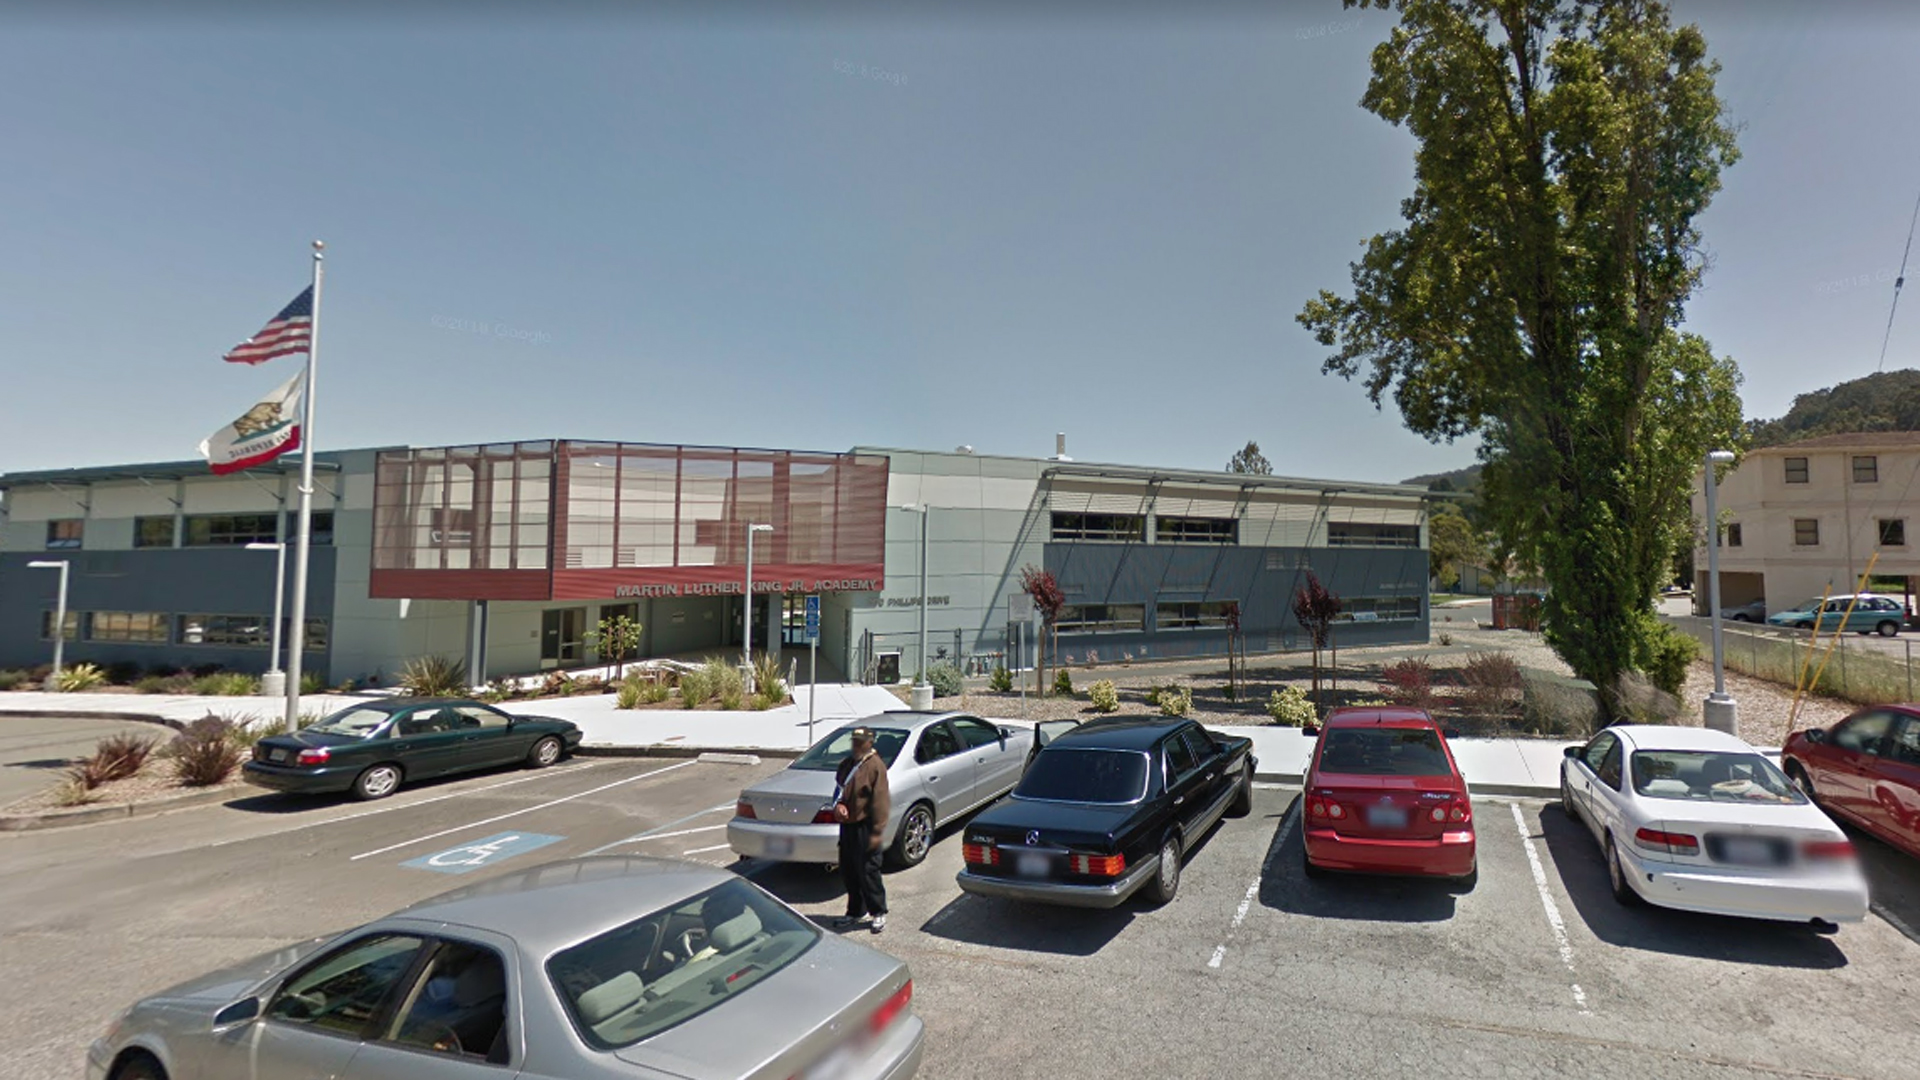 The Sausalito Marin City School District, located inside the Bayside Martin Luther King Jr. Academy, in Sausalito, Calif., is seen in this undated image from Google Maps.